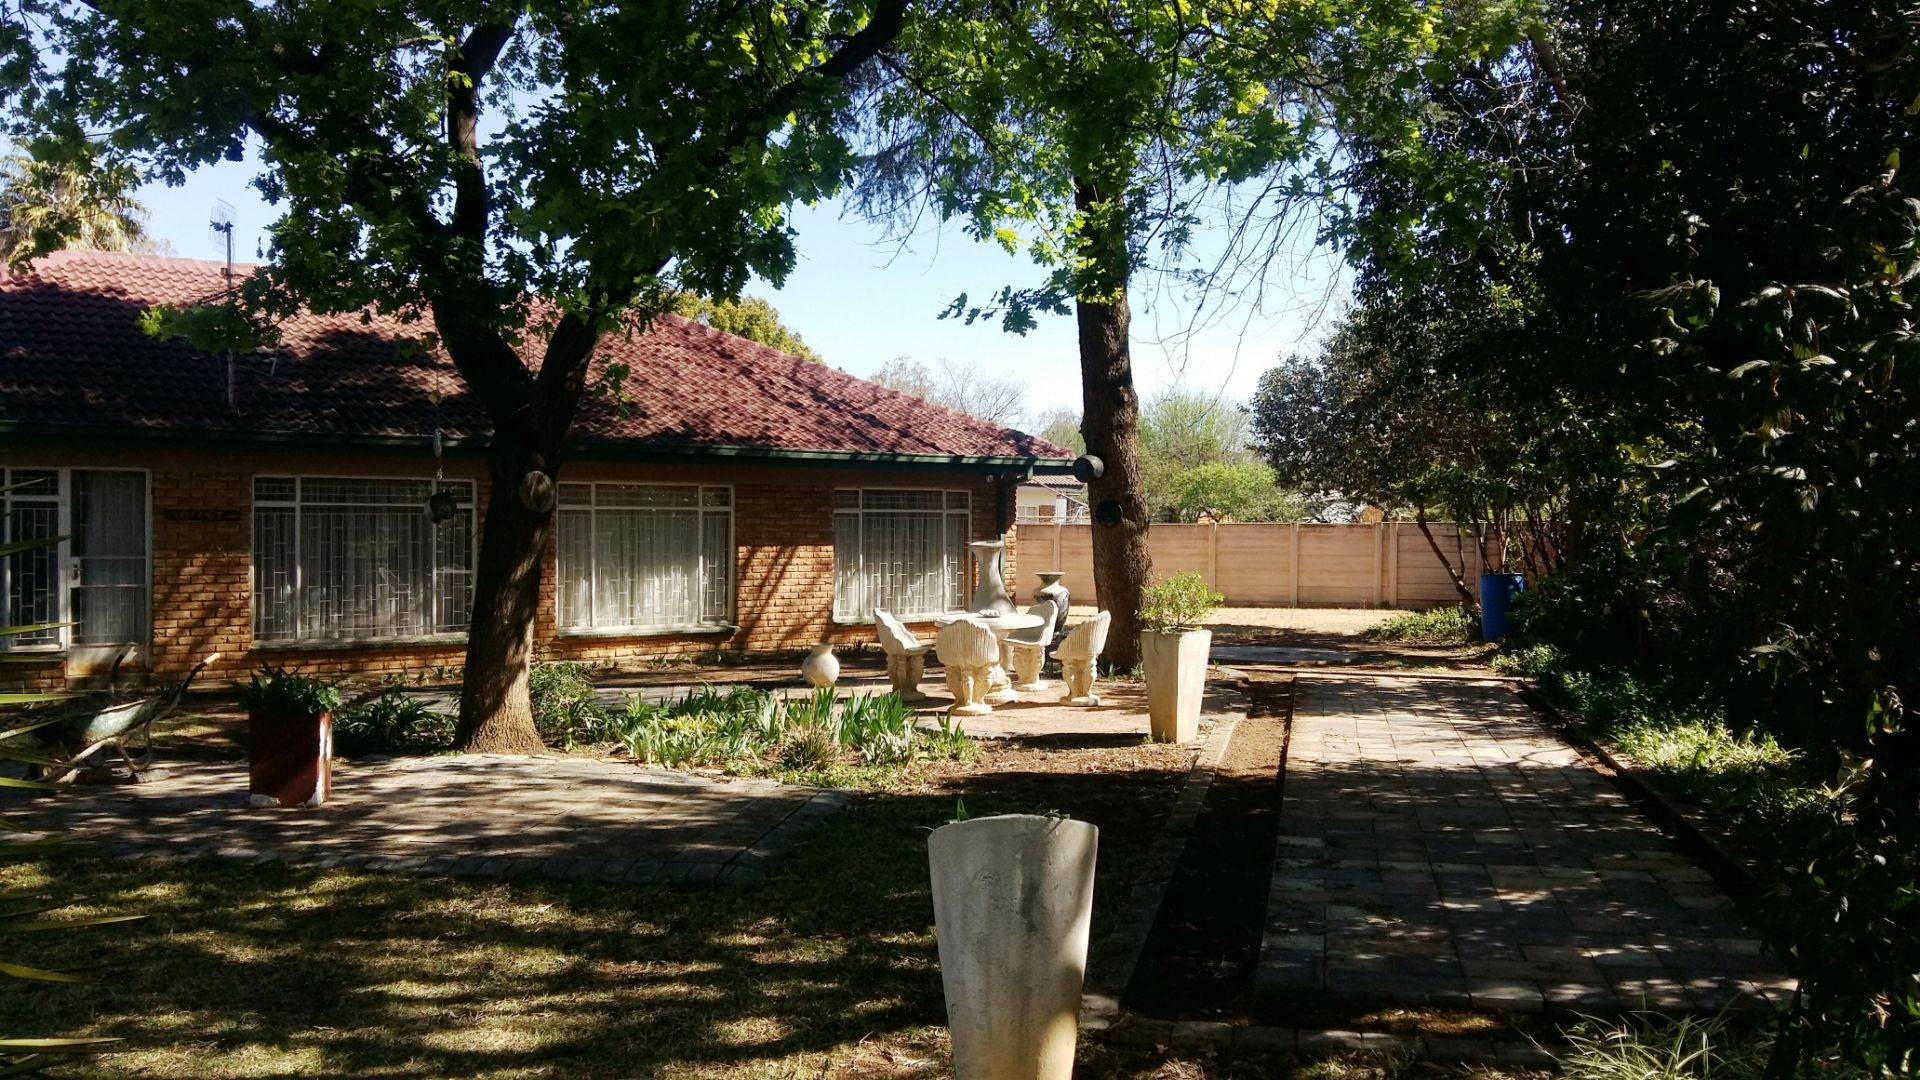 House in Miederpark - 20180914_144138.jpg